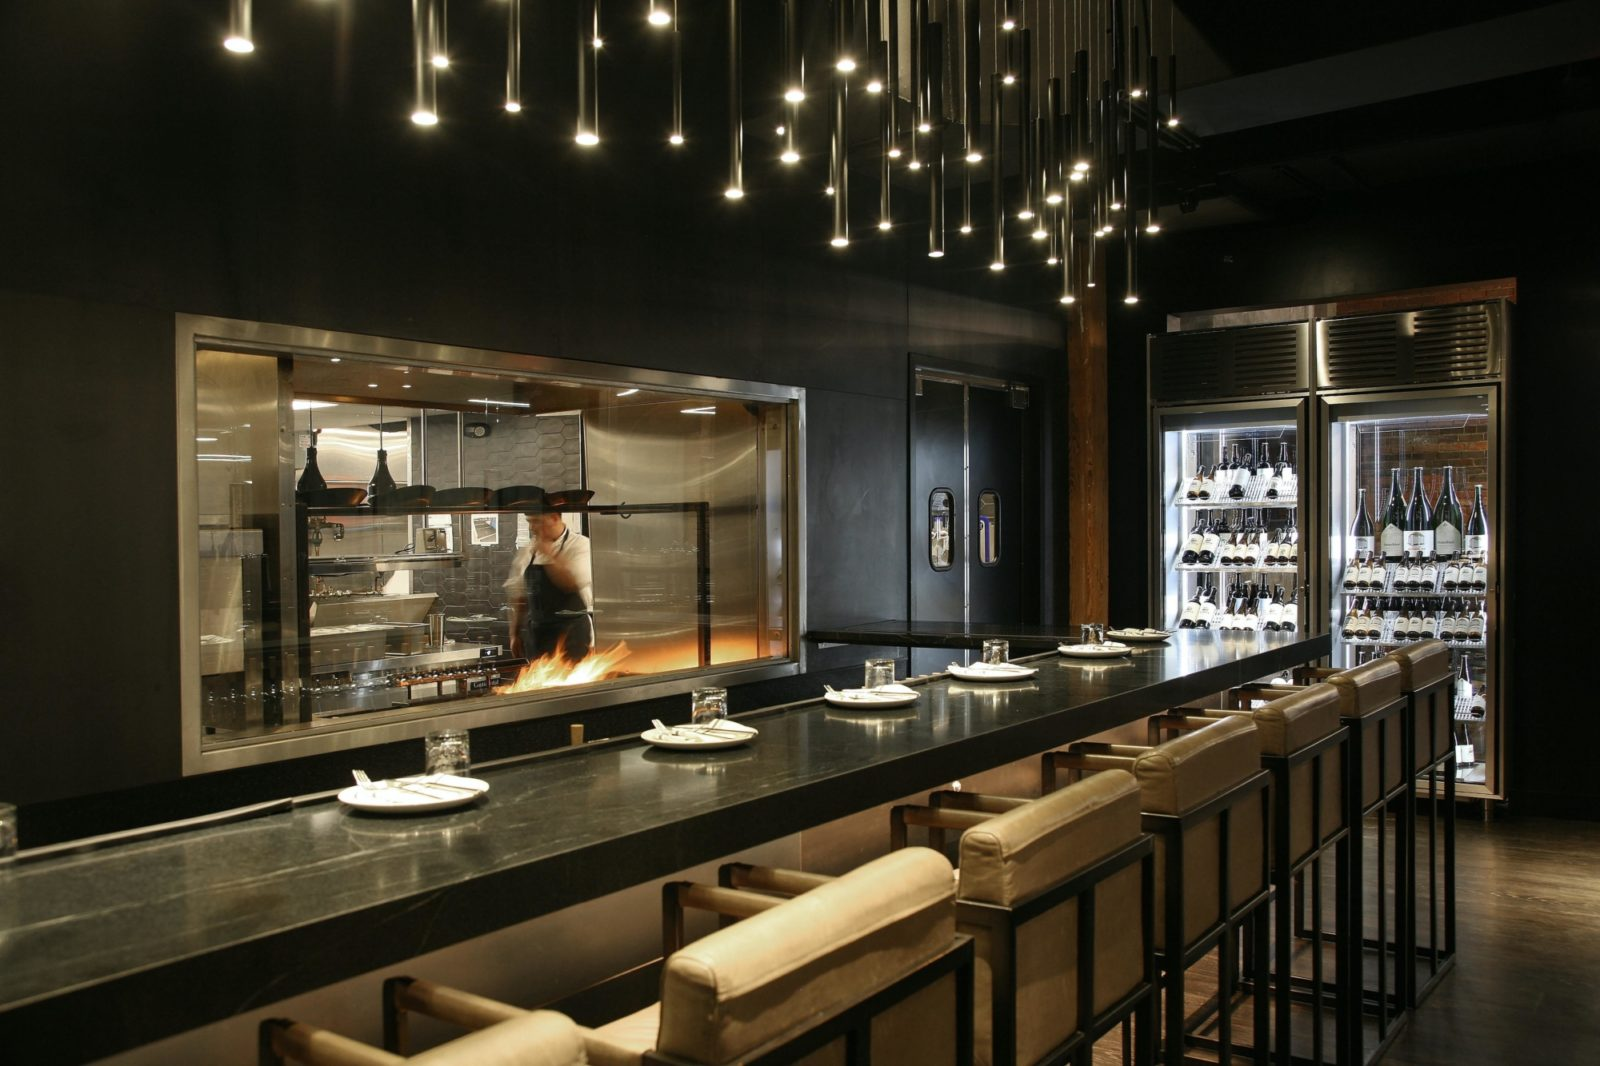 Restaurant Kitchen Designs How To Set Up A Commercial On The Line Toast Pos